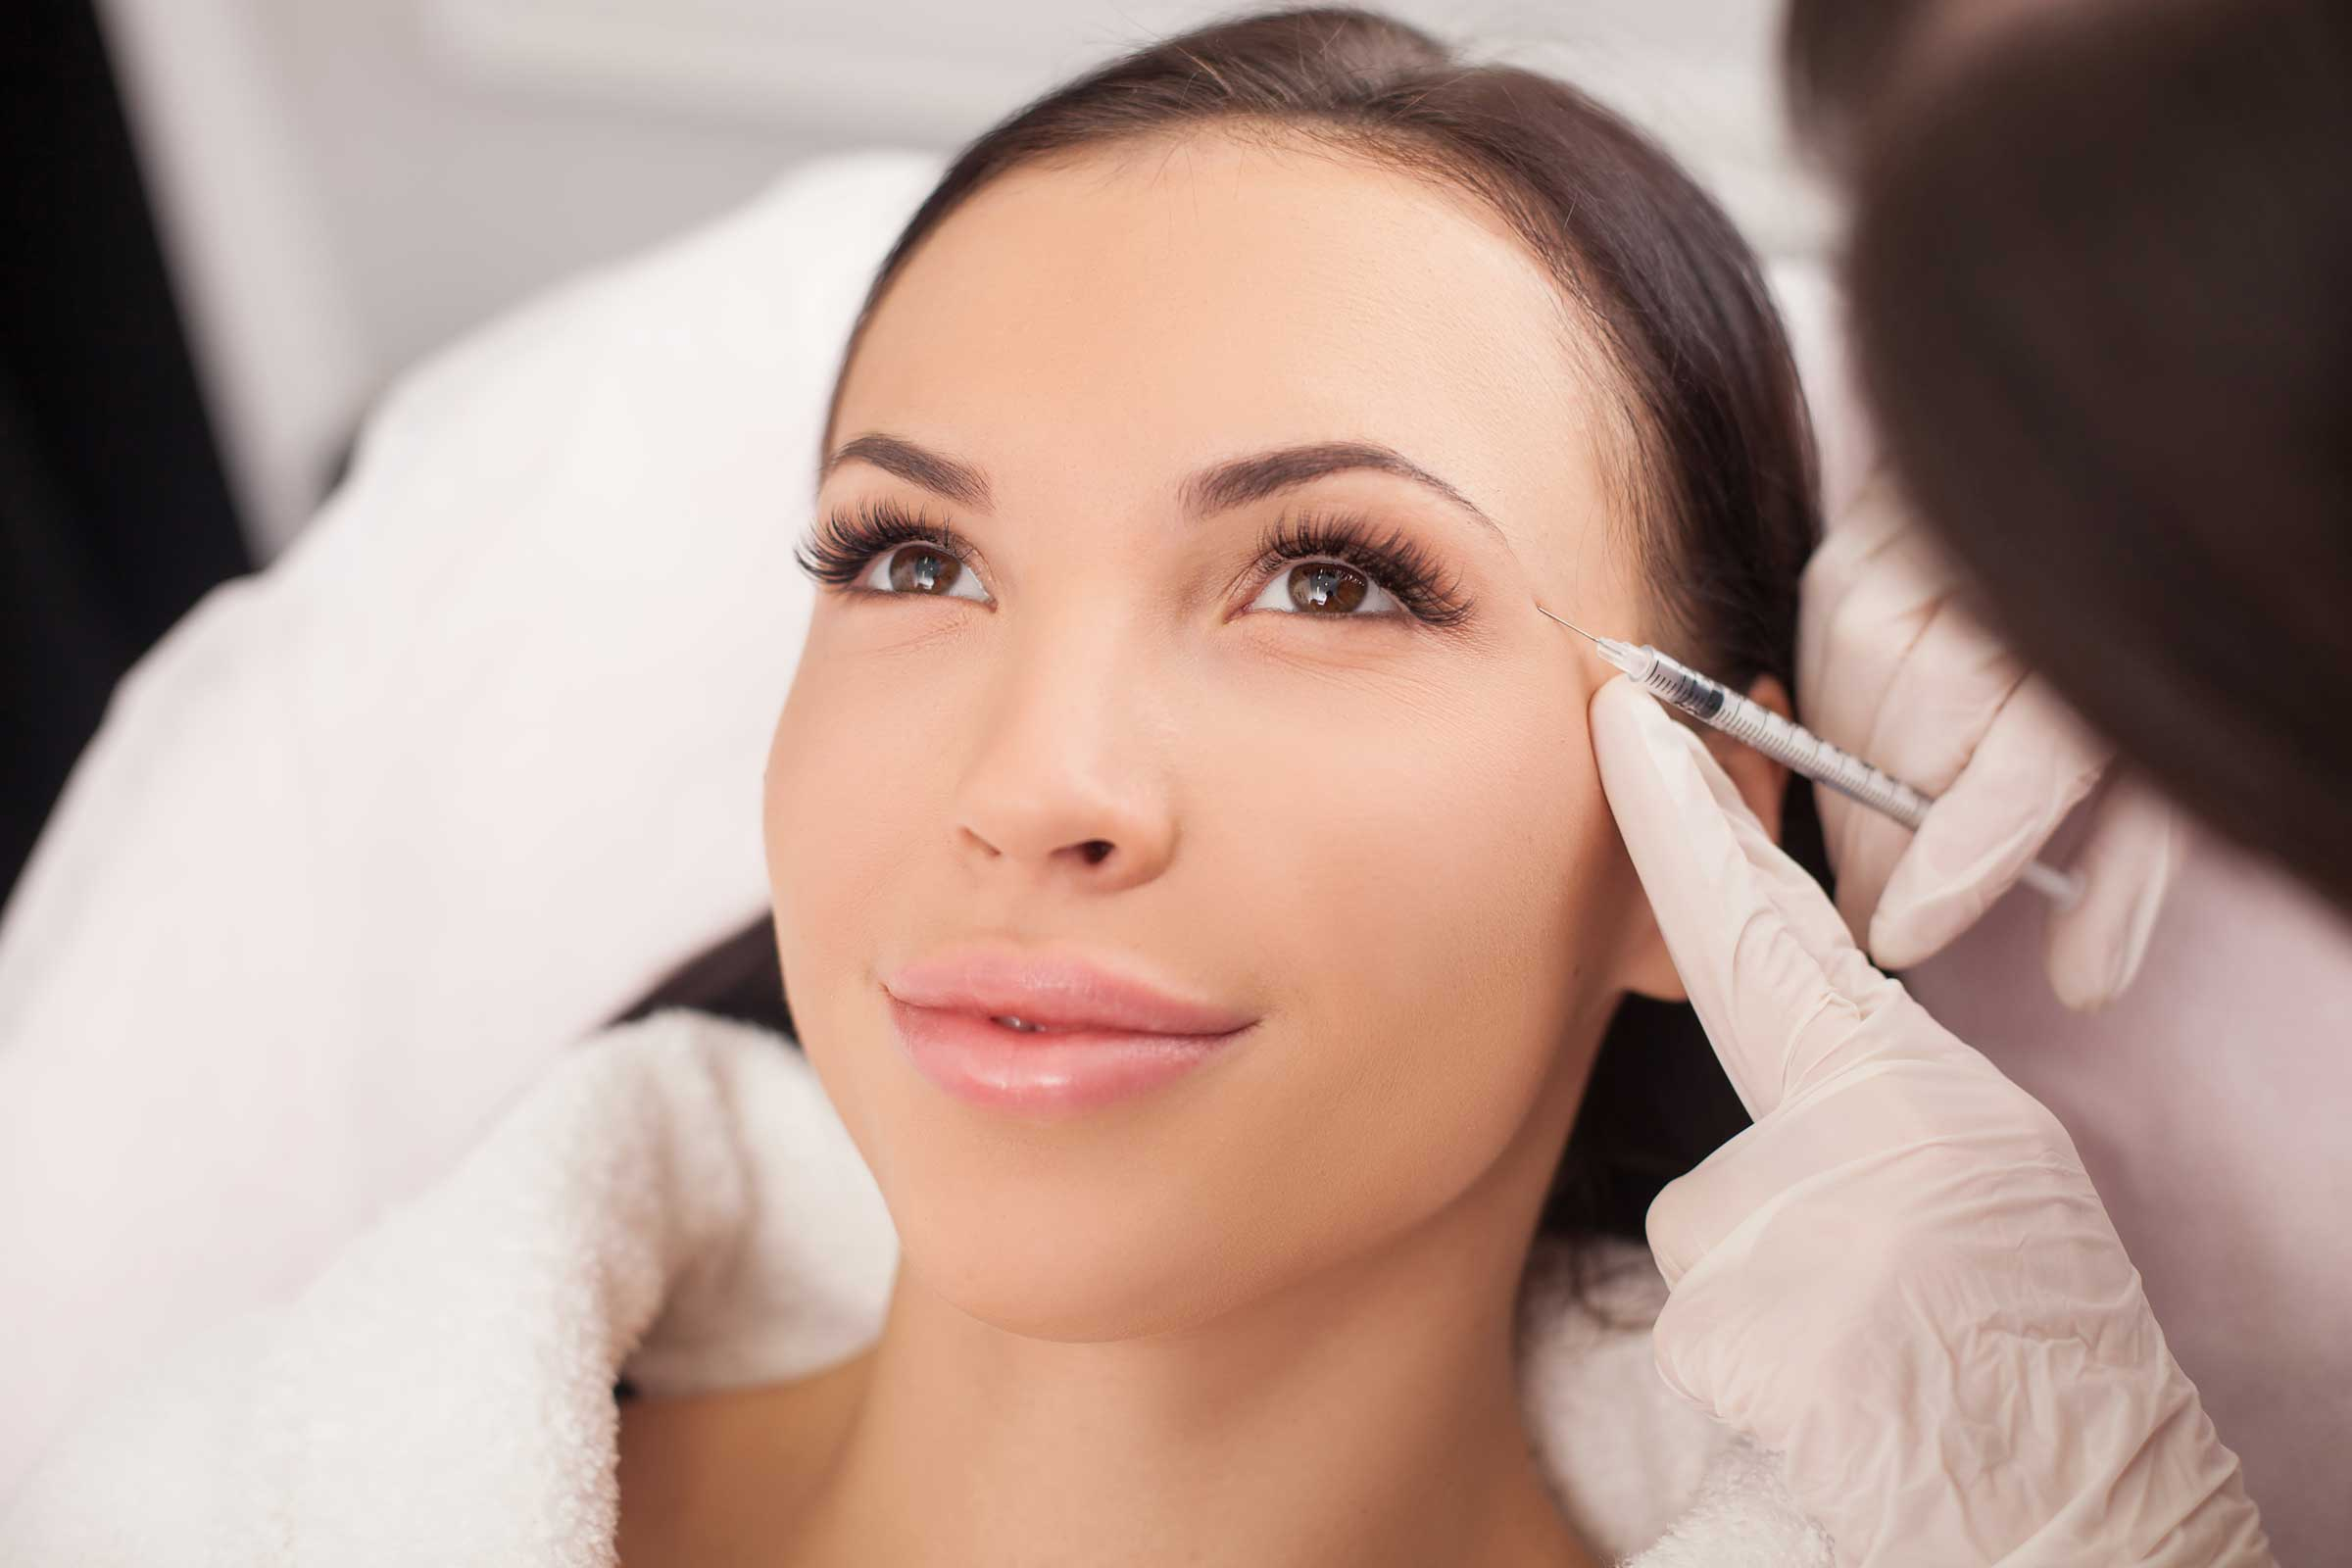 The Look You Deserve Aesthetics - Coventry Dermal Fillers